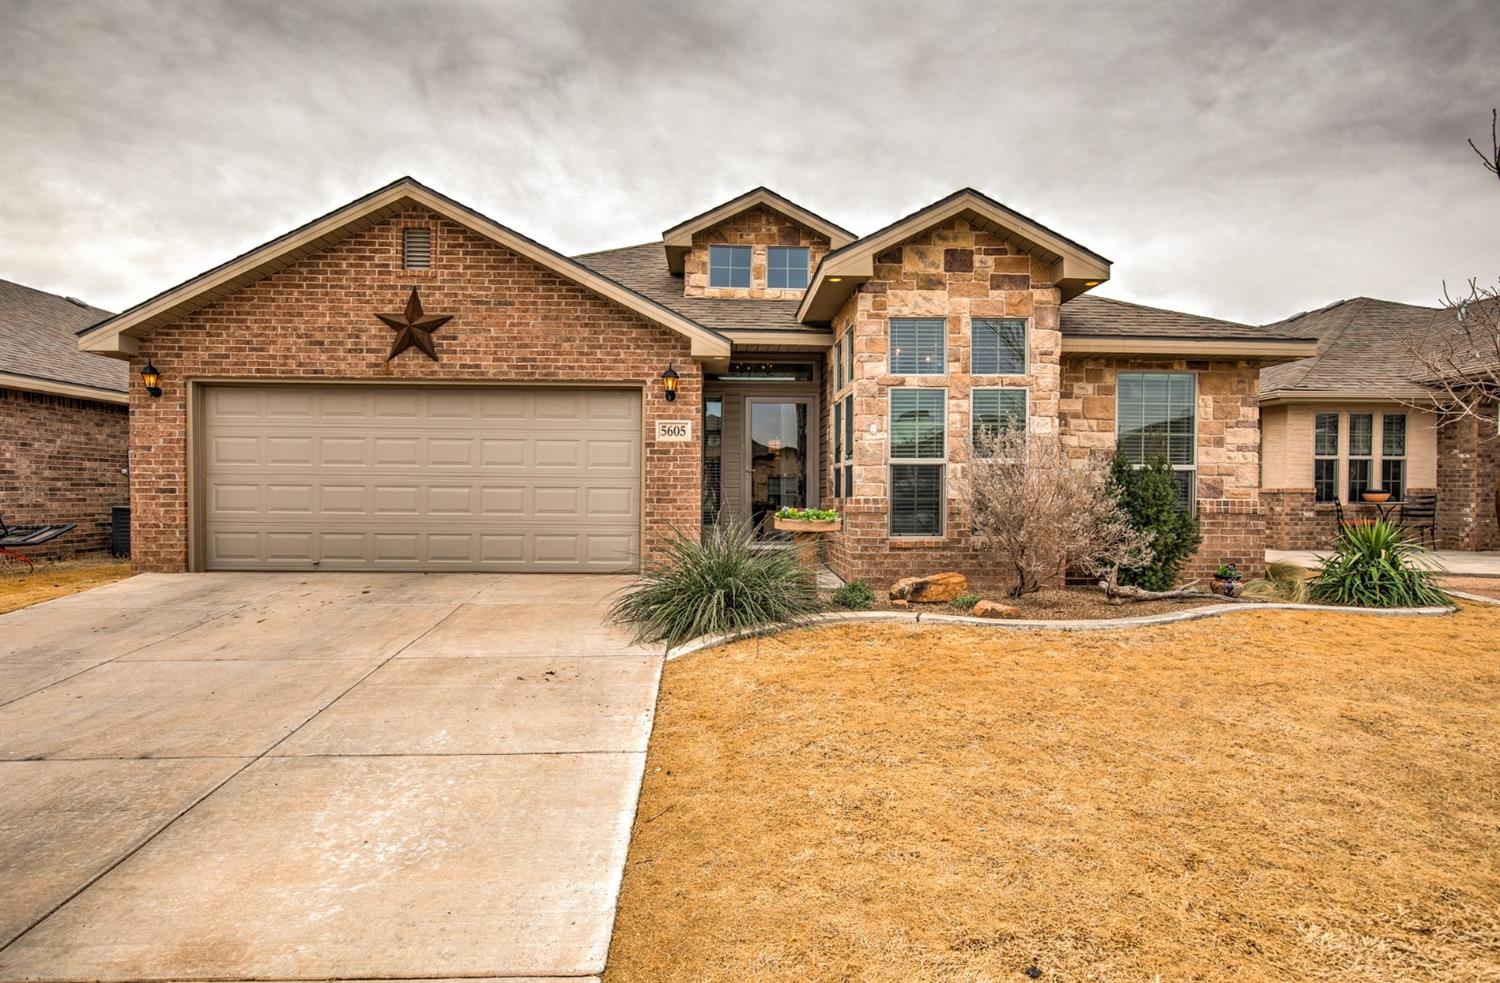 5605 109th Street, Lubbock in Lubbock County, TX 79424 Home for Sale